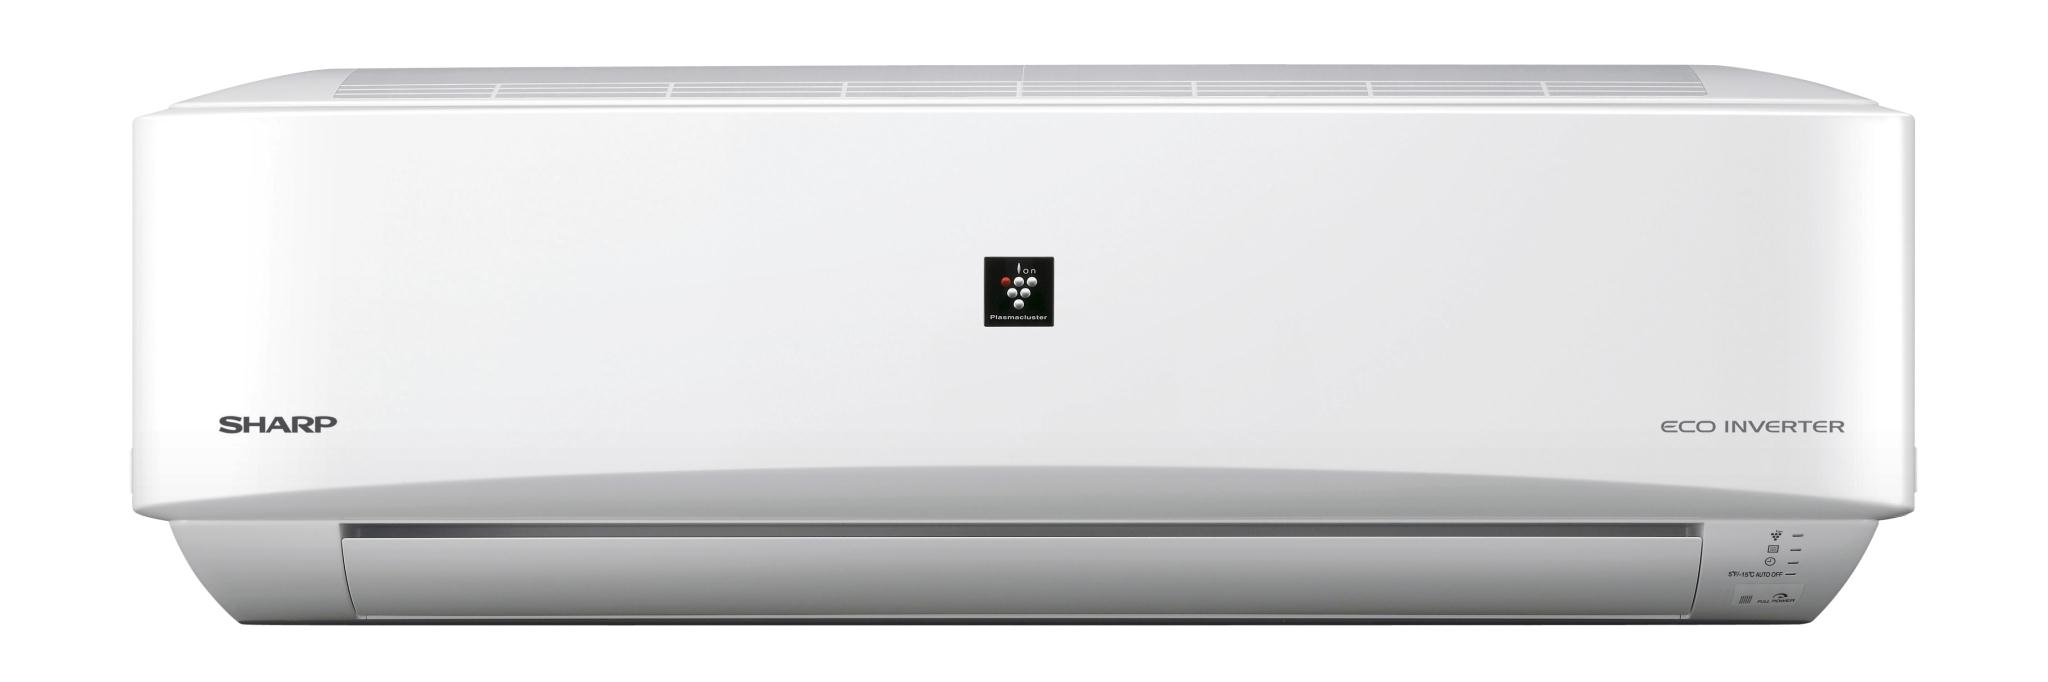 Mini Split Heat Pump Air Conditioner Ductless Systems On Sale